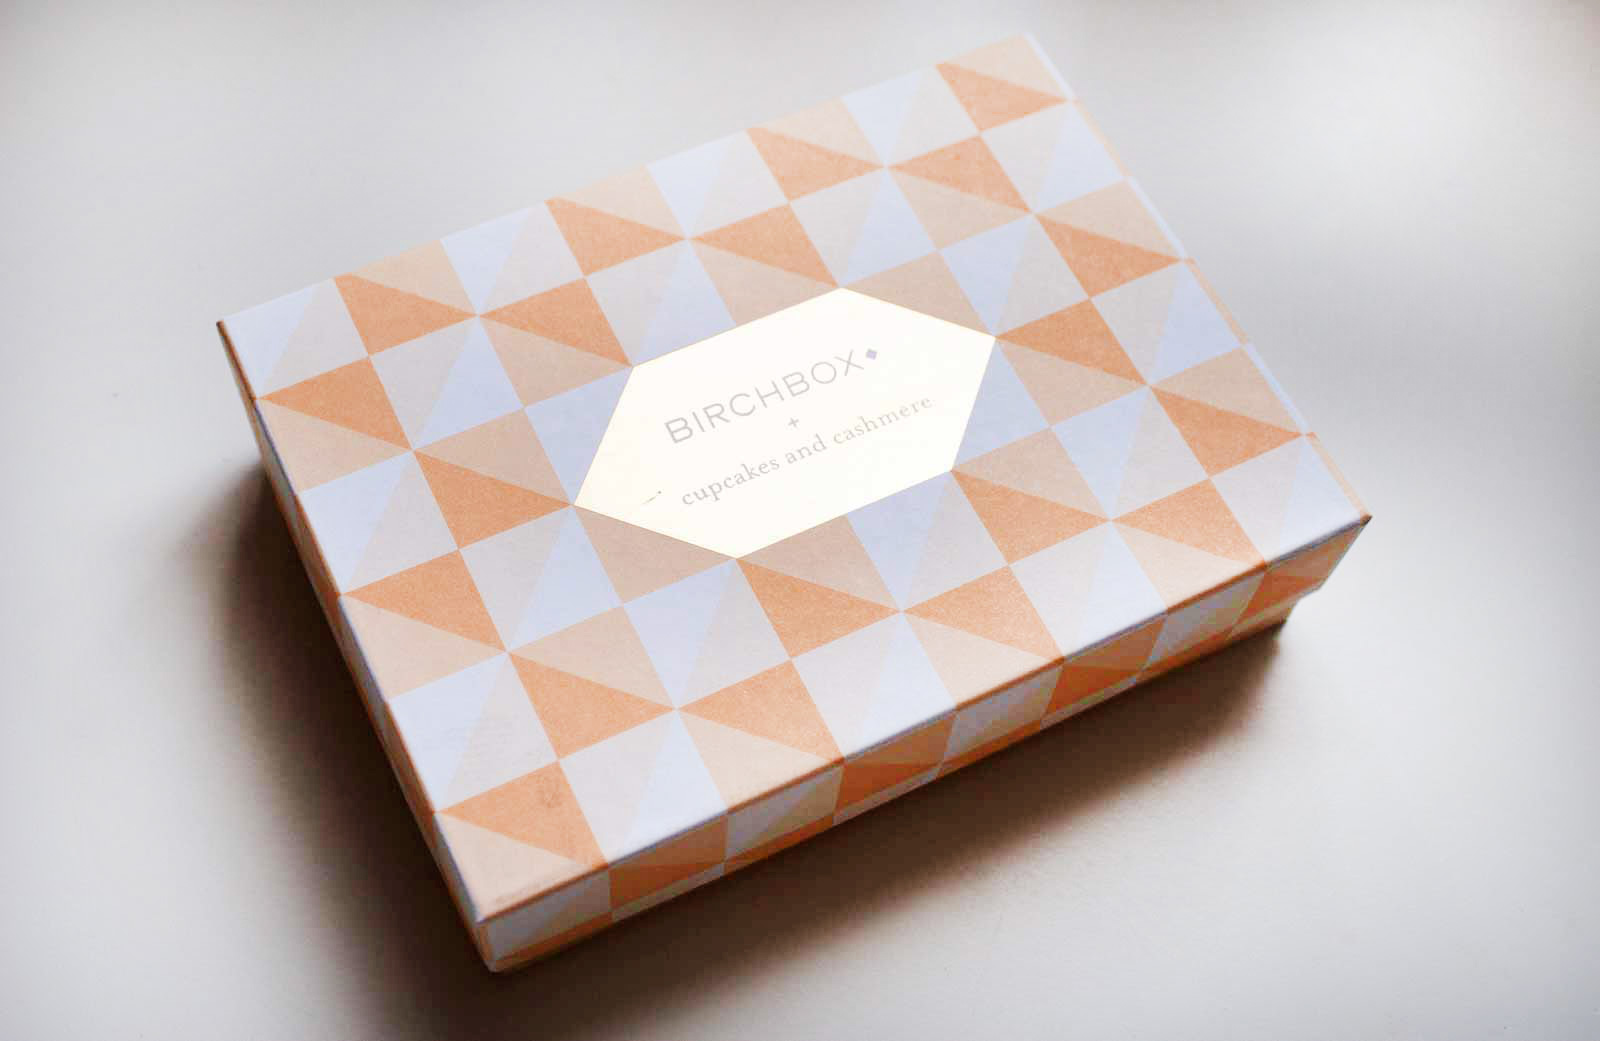 May 2015 Birchbox Cupcakes & Cashmere Review